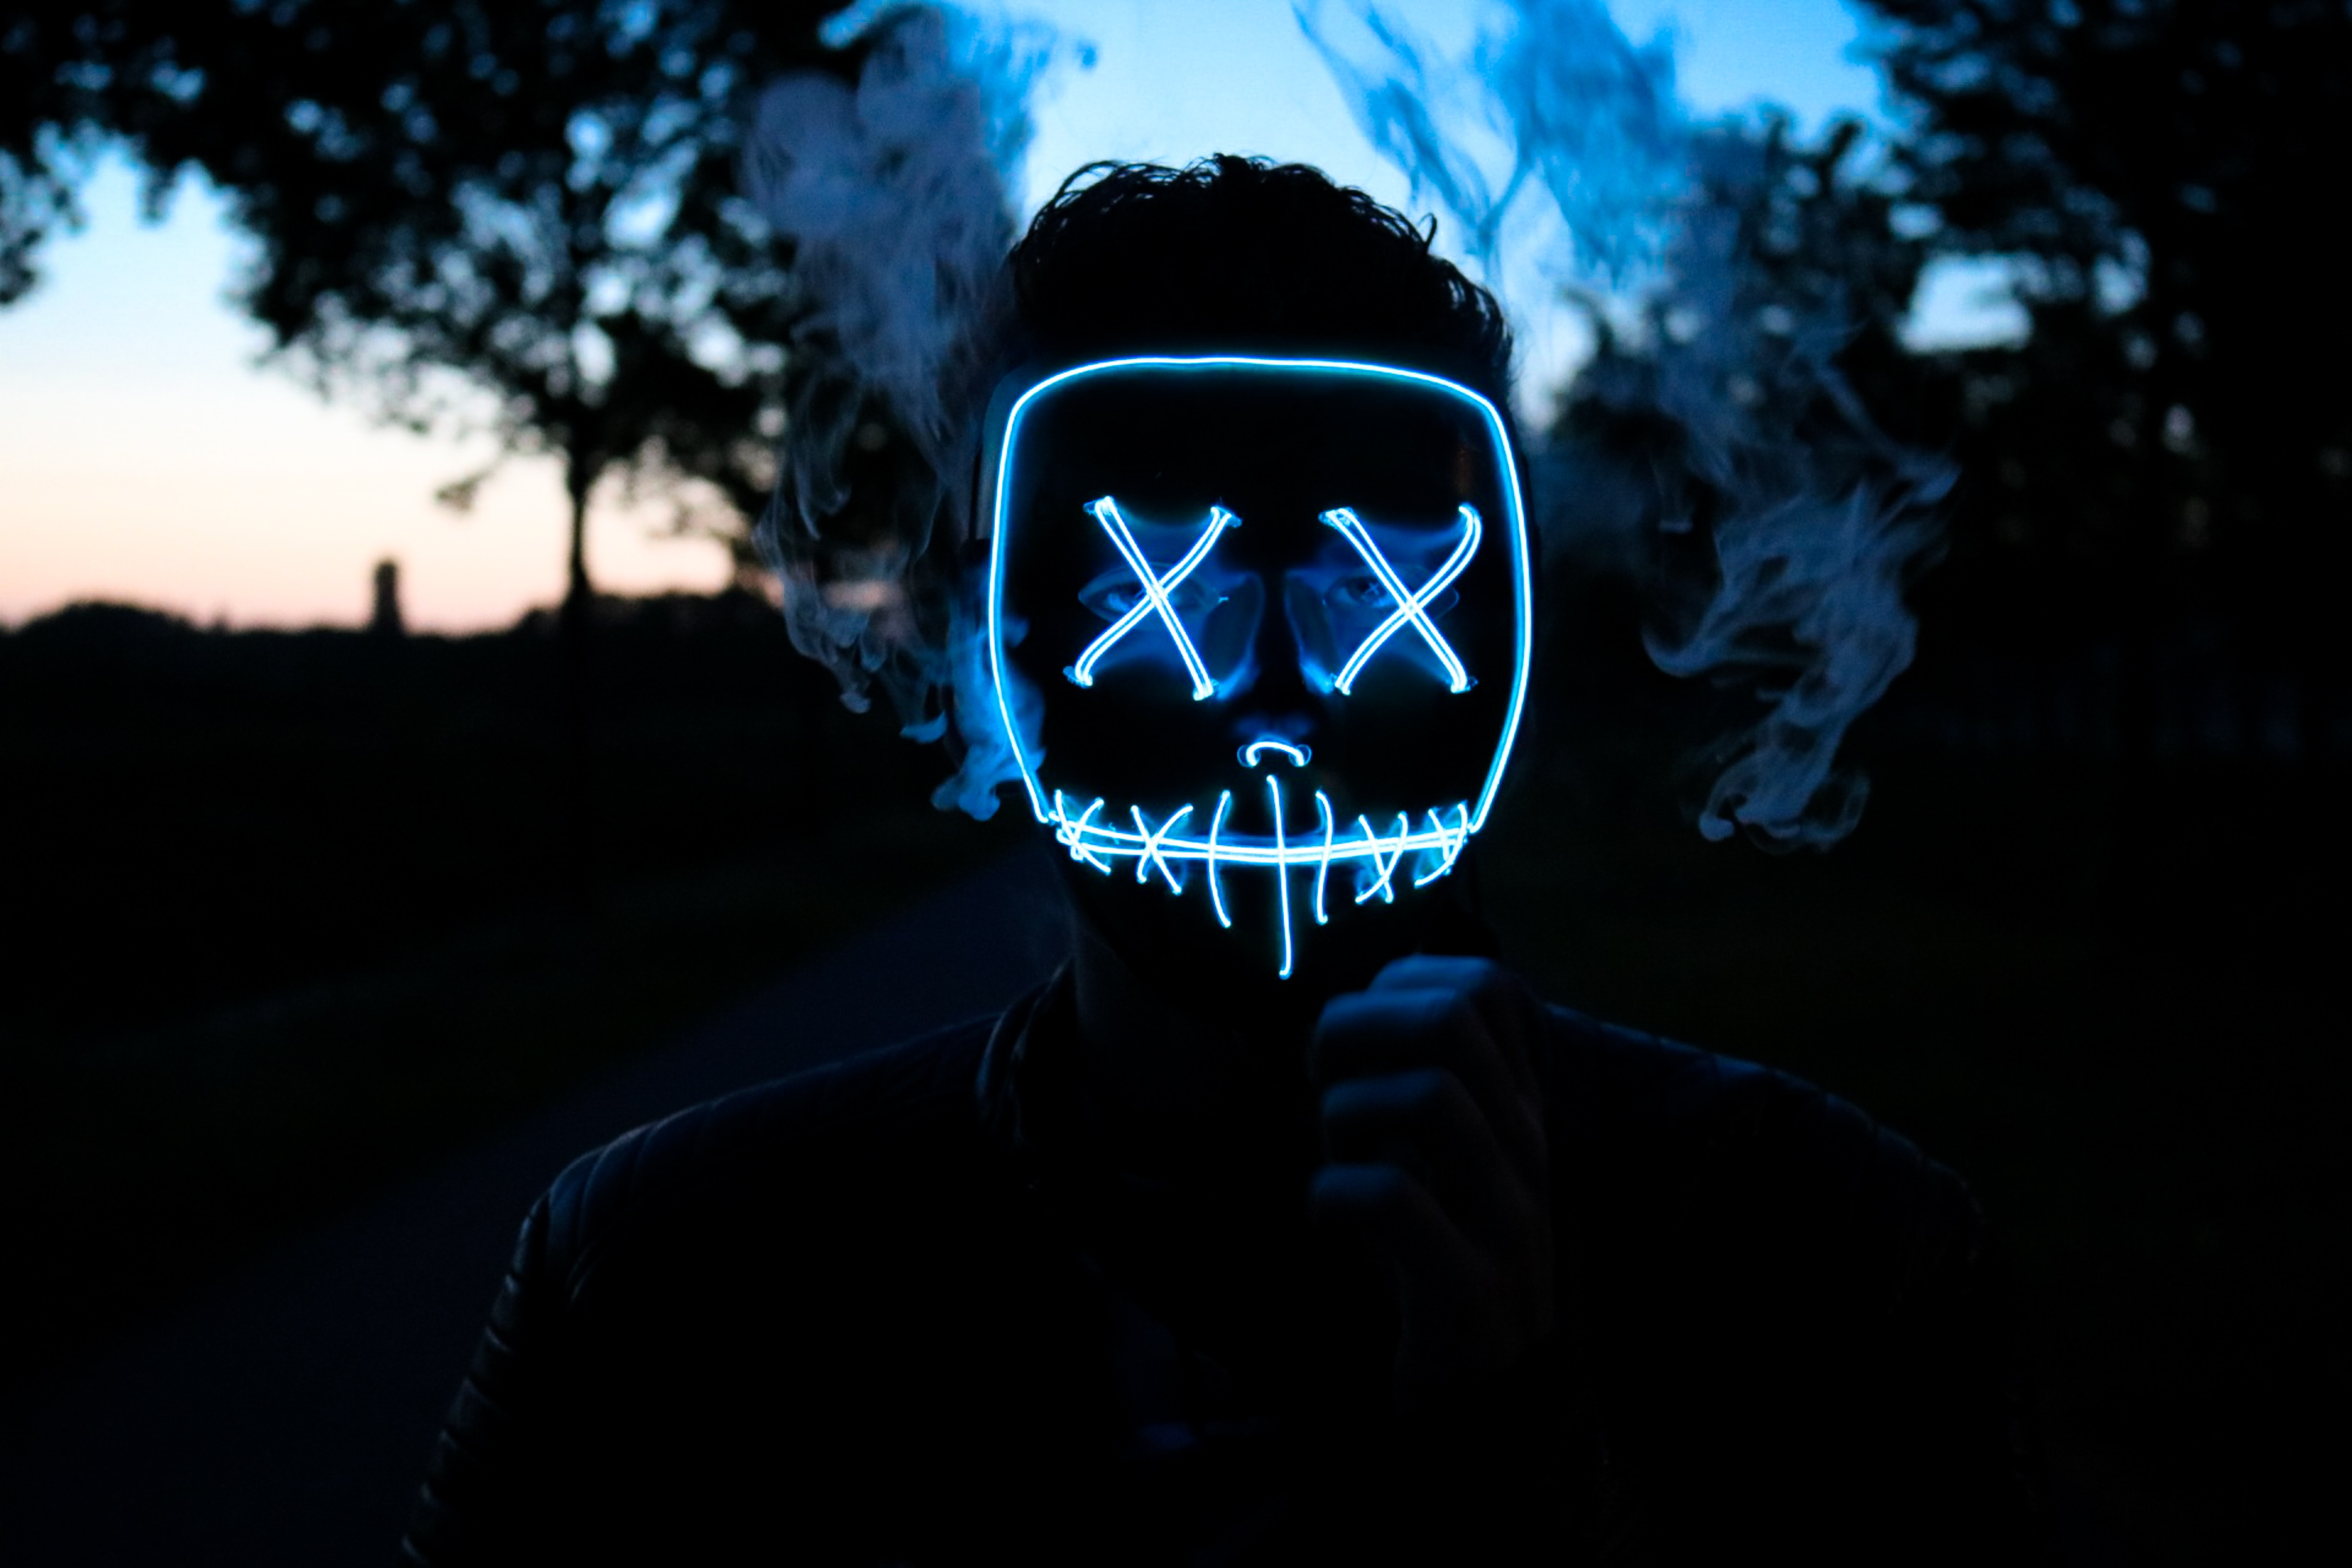 man wearing LED mask